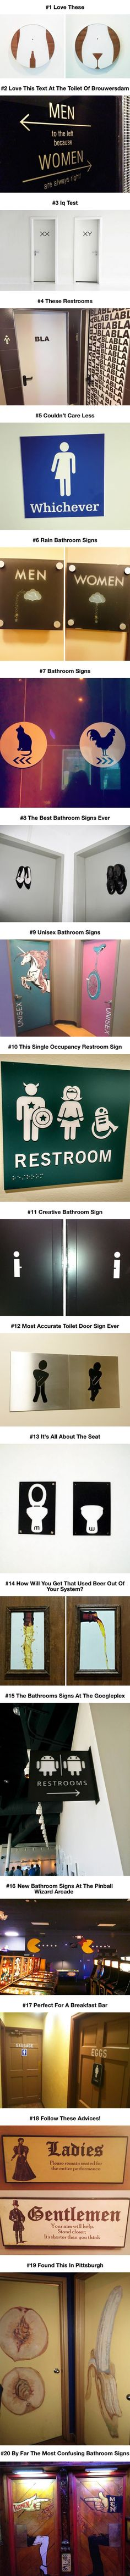 Most Creative Bathroom Signs